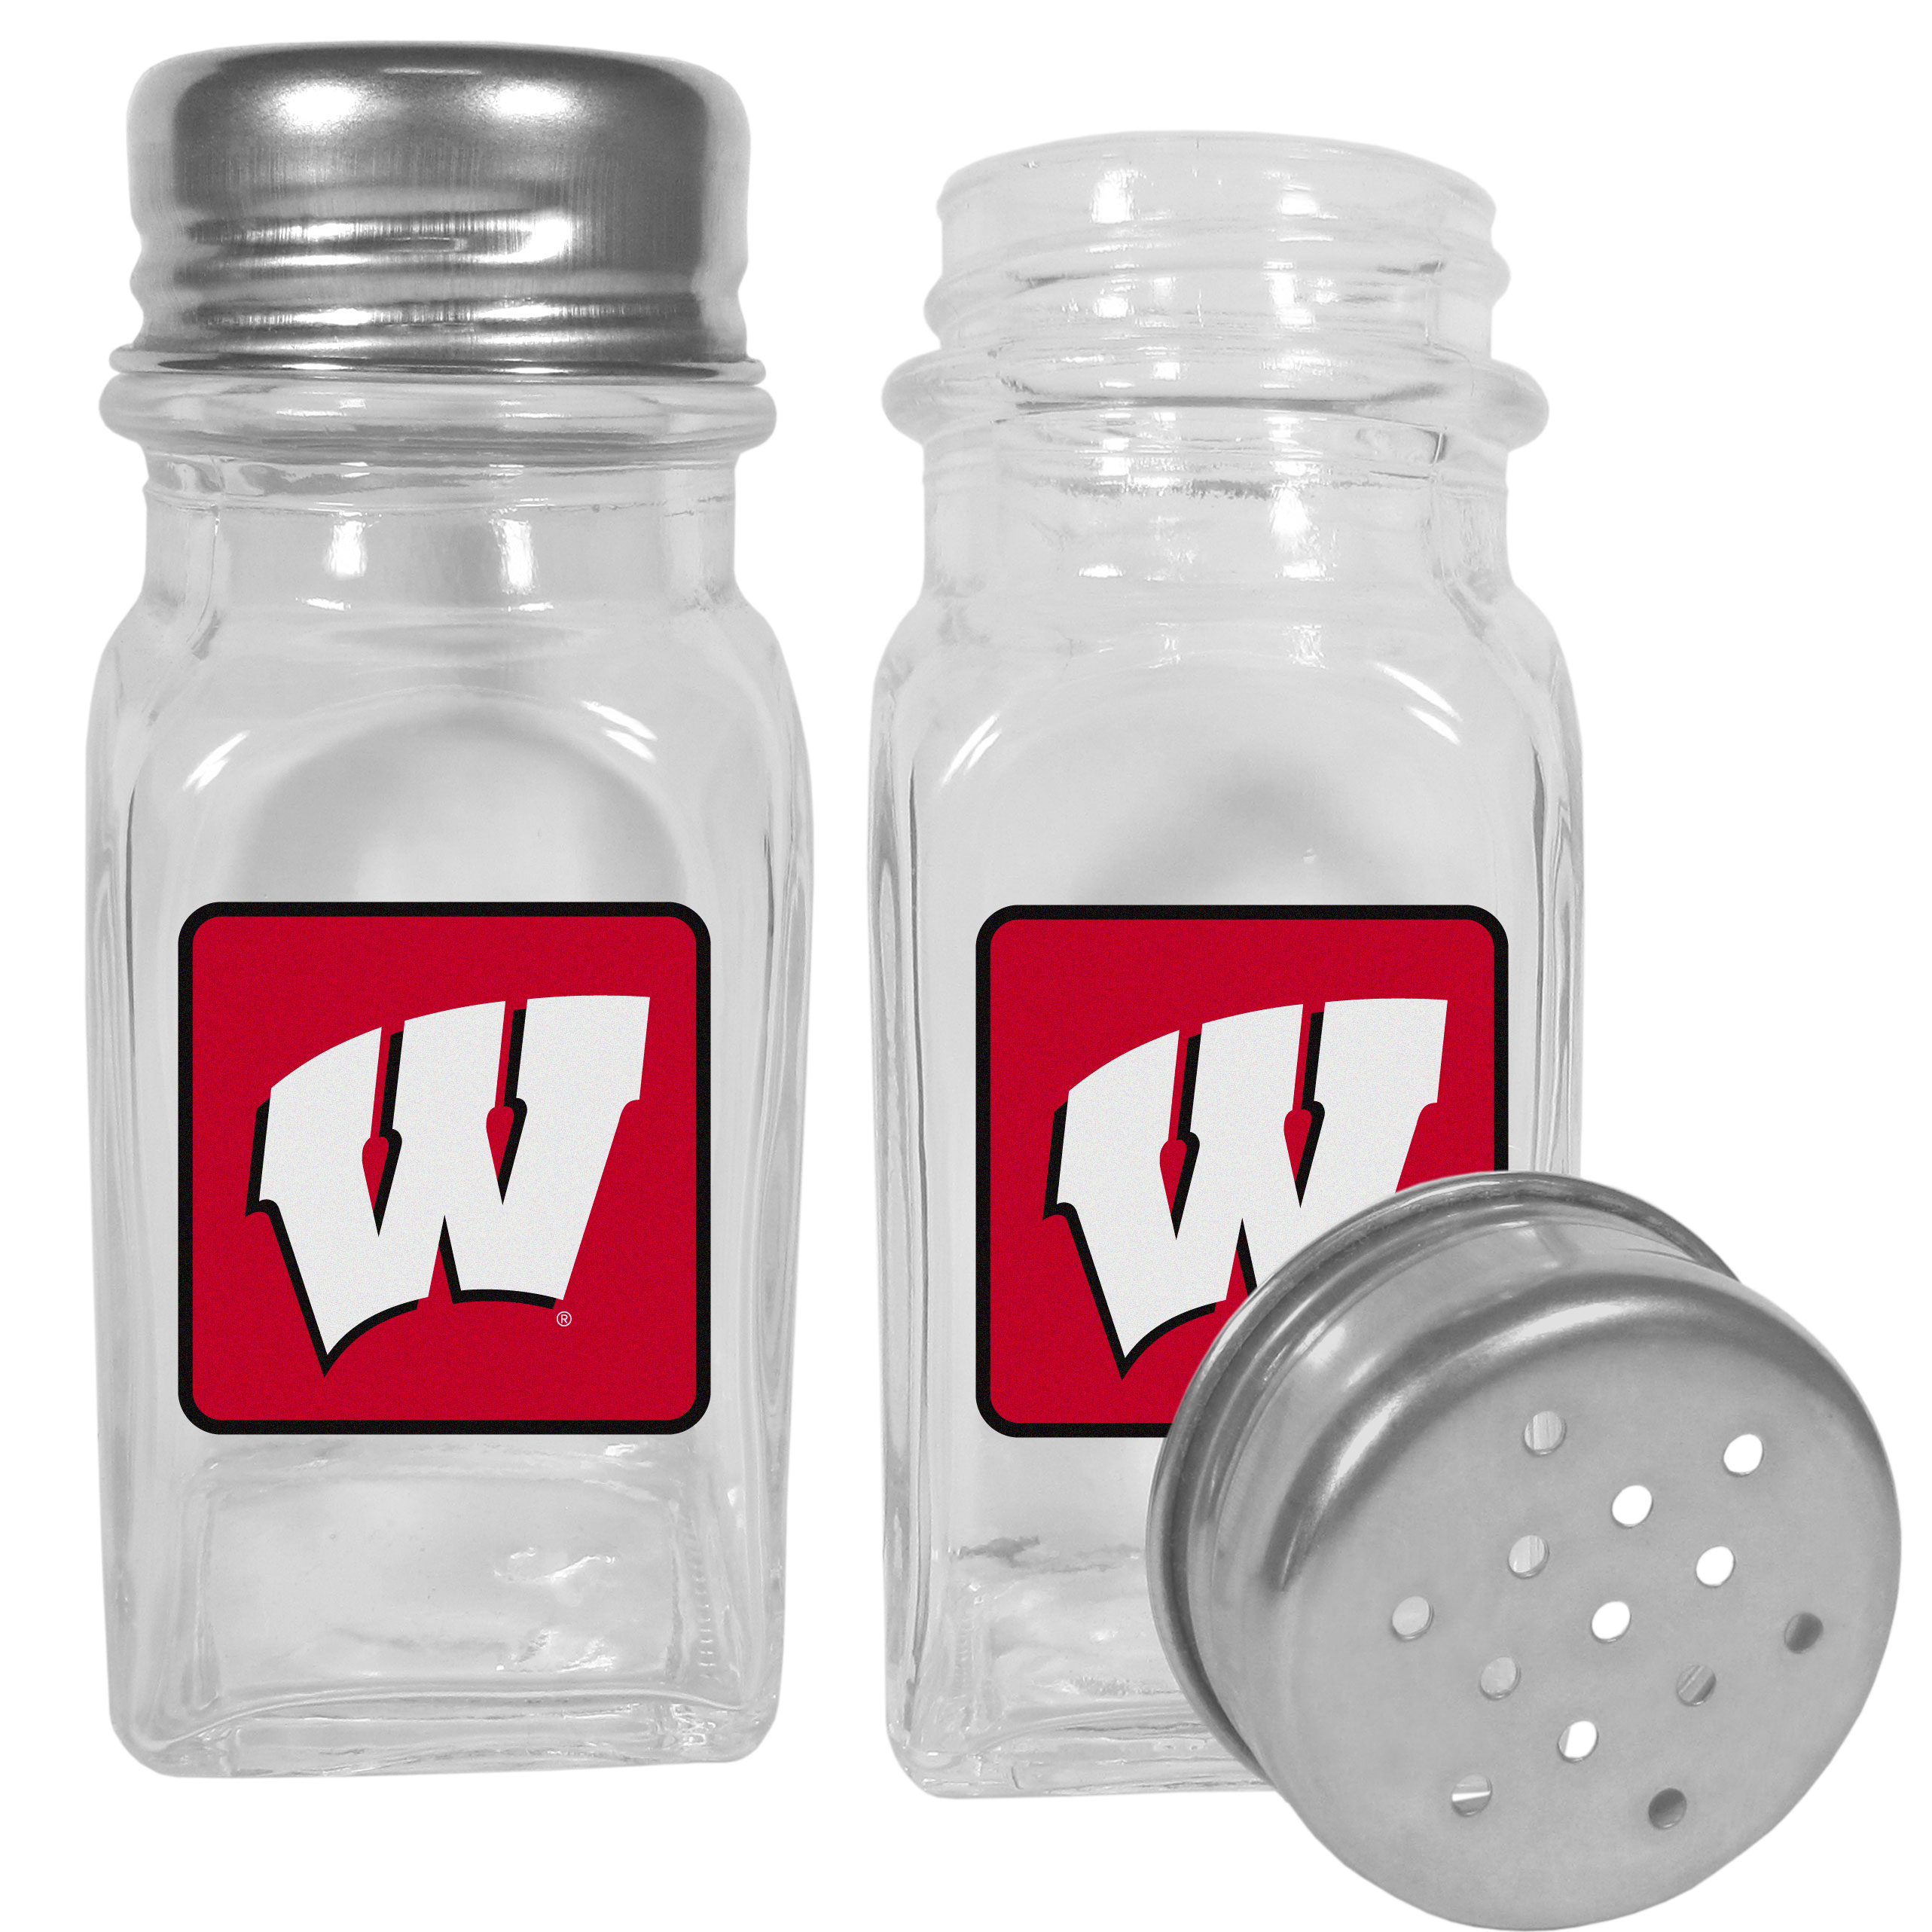 Wisconsin Badgers Graphics Salt and Pepper Shaker - No tailgate party is complete without your Wisconsin Badgers salt & pepper shakers featuring bright team logos. The diner replica salt and pepper shakers are glass with screw top lids. These team shakers are a great grill accessory whether you are barbecuing on the patio, picnicing or having a game day party.